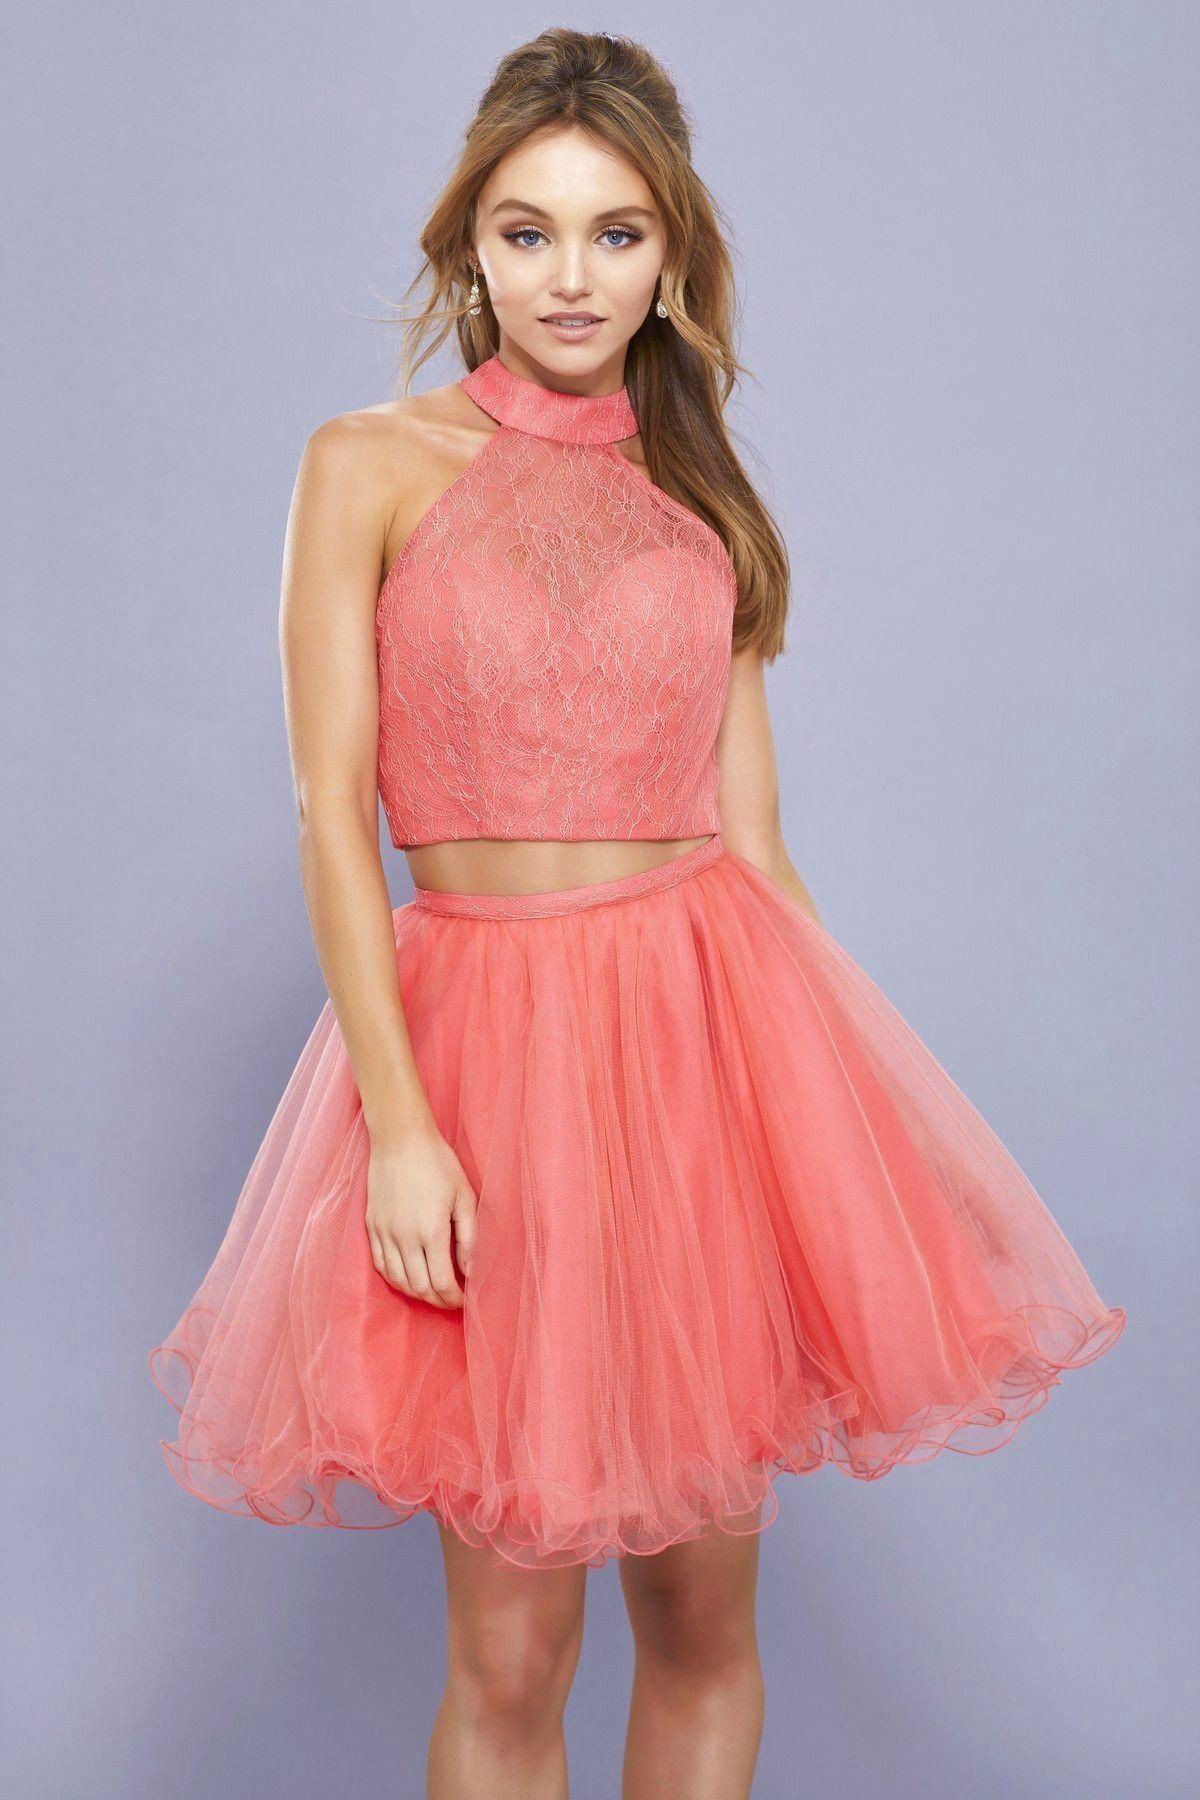 7cfb01f4b3b0 Short Two Piece Dress with Lace Top by Nox Anabel 6354 | Products ...